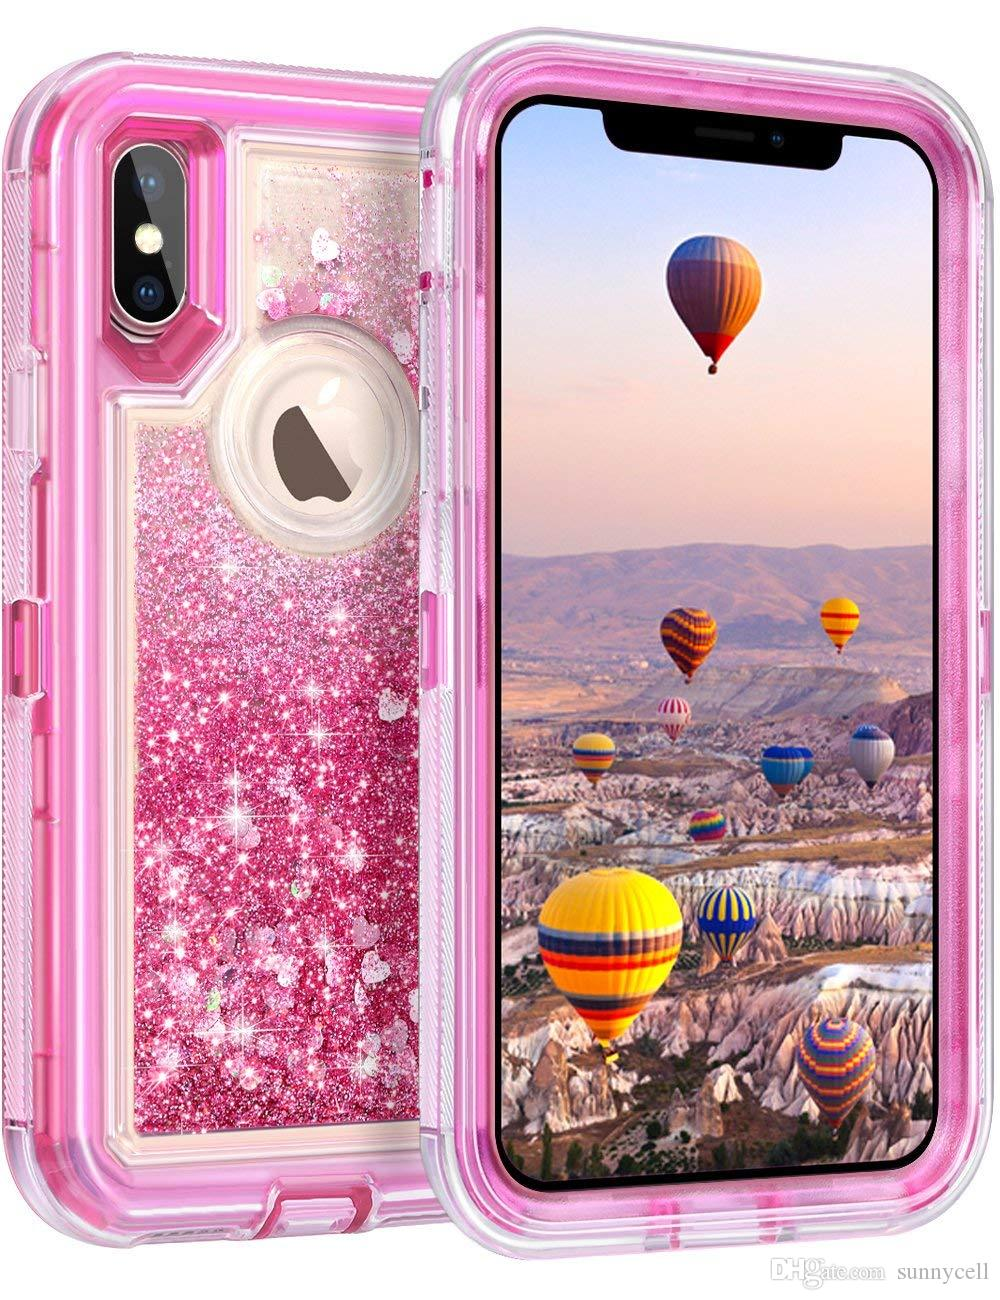 For Iphone 6 7 8 6plus 7plus 8plus X Xr Xs Max Cute Bling Liquid Glitter Floating Quicksand Water Flowing Ultra Phone Case Jeweled Cell Phone